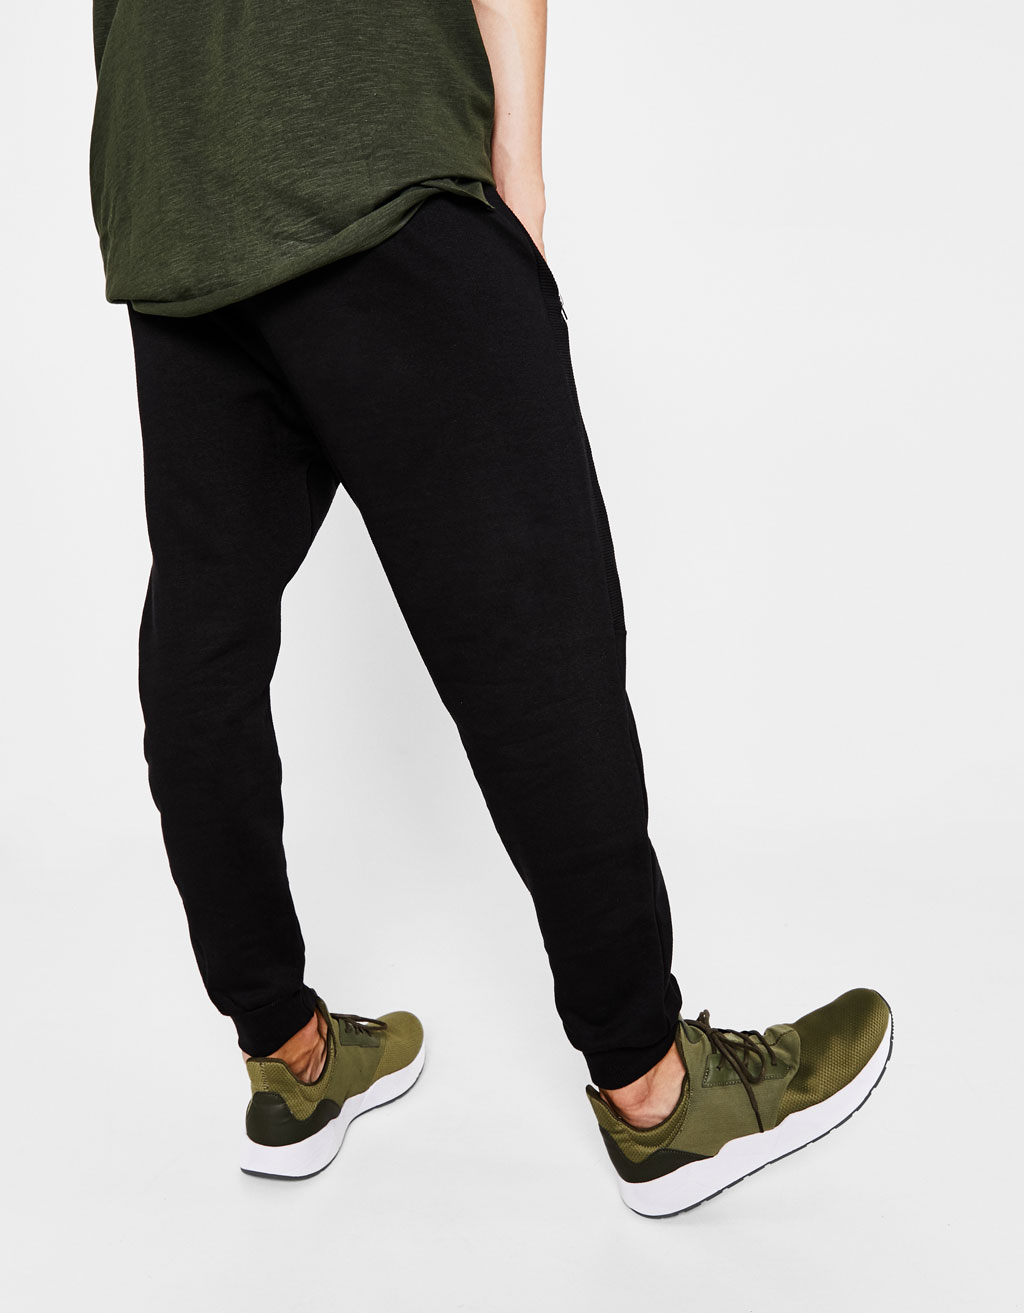 Jogging trousers with drawstring cord